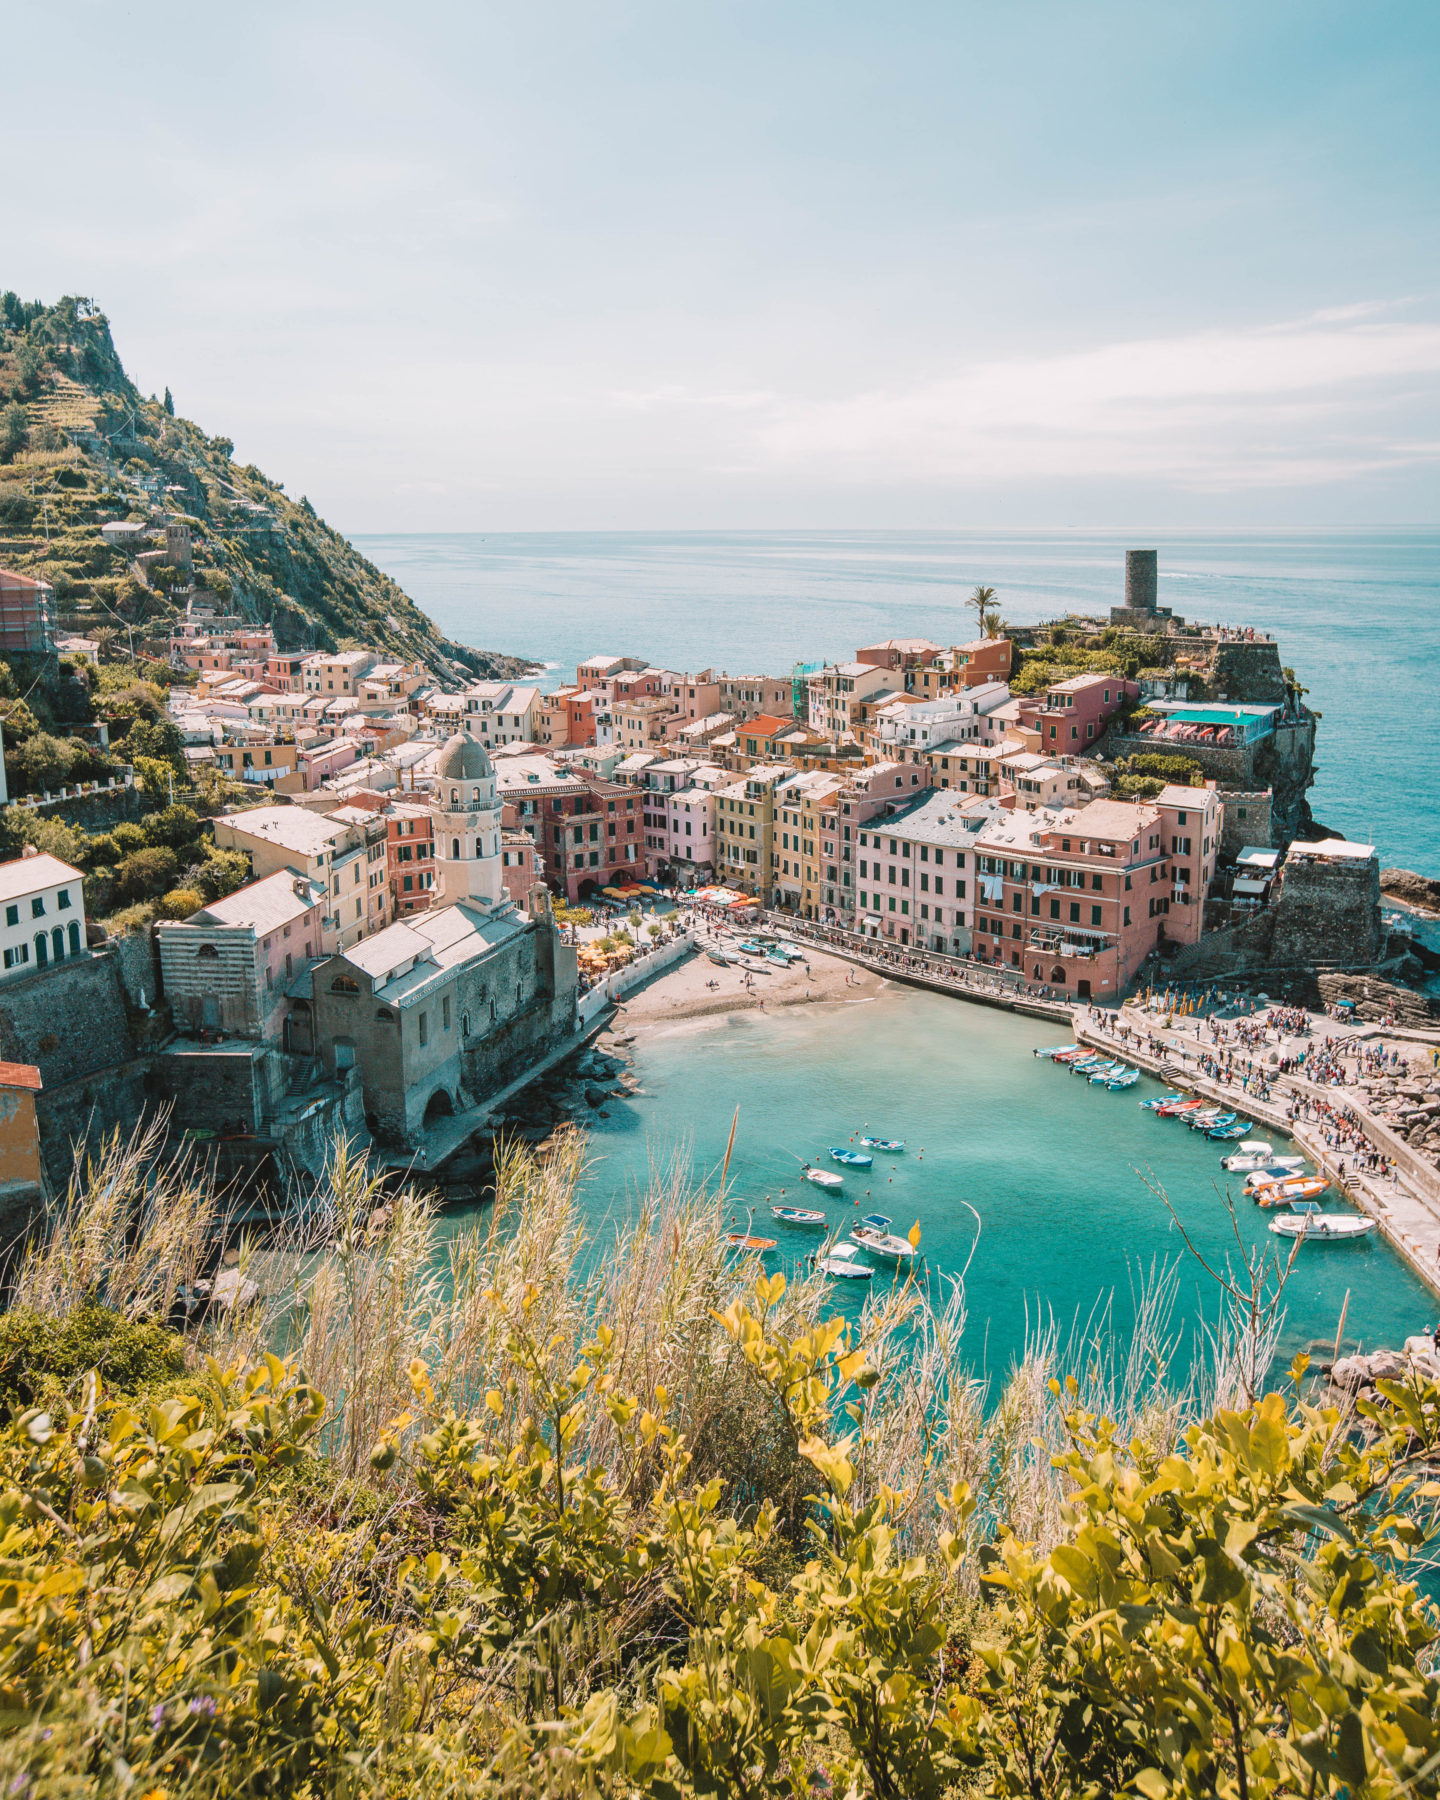 The Ultimate Guide to Cinque Terre by train!